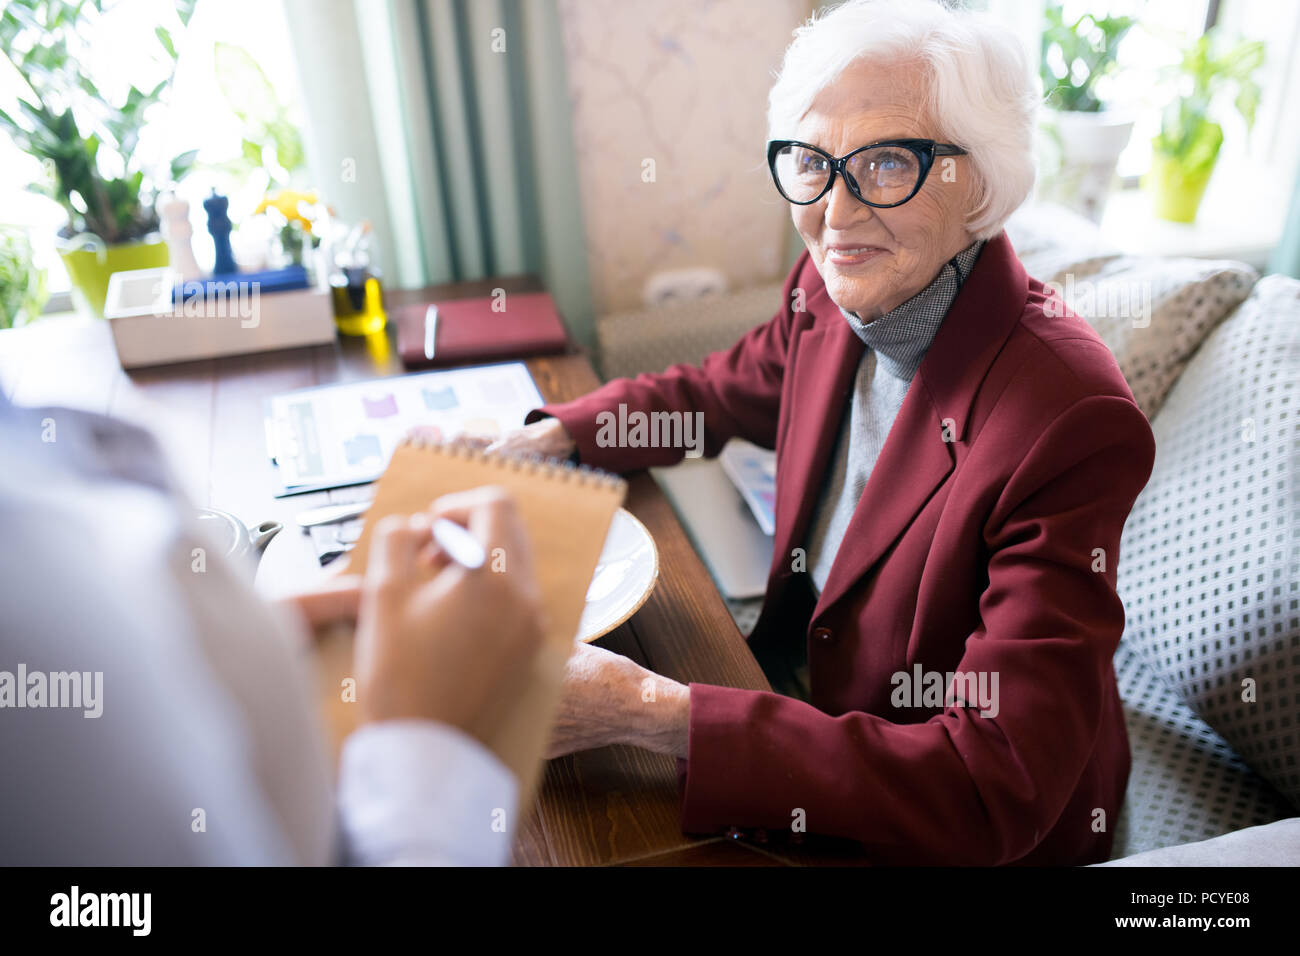 Senior woman making an order - Stock Image